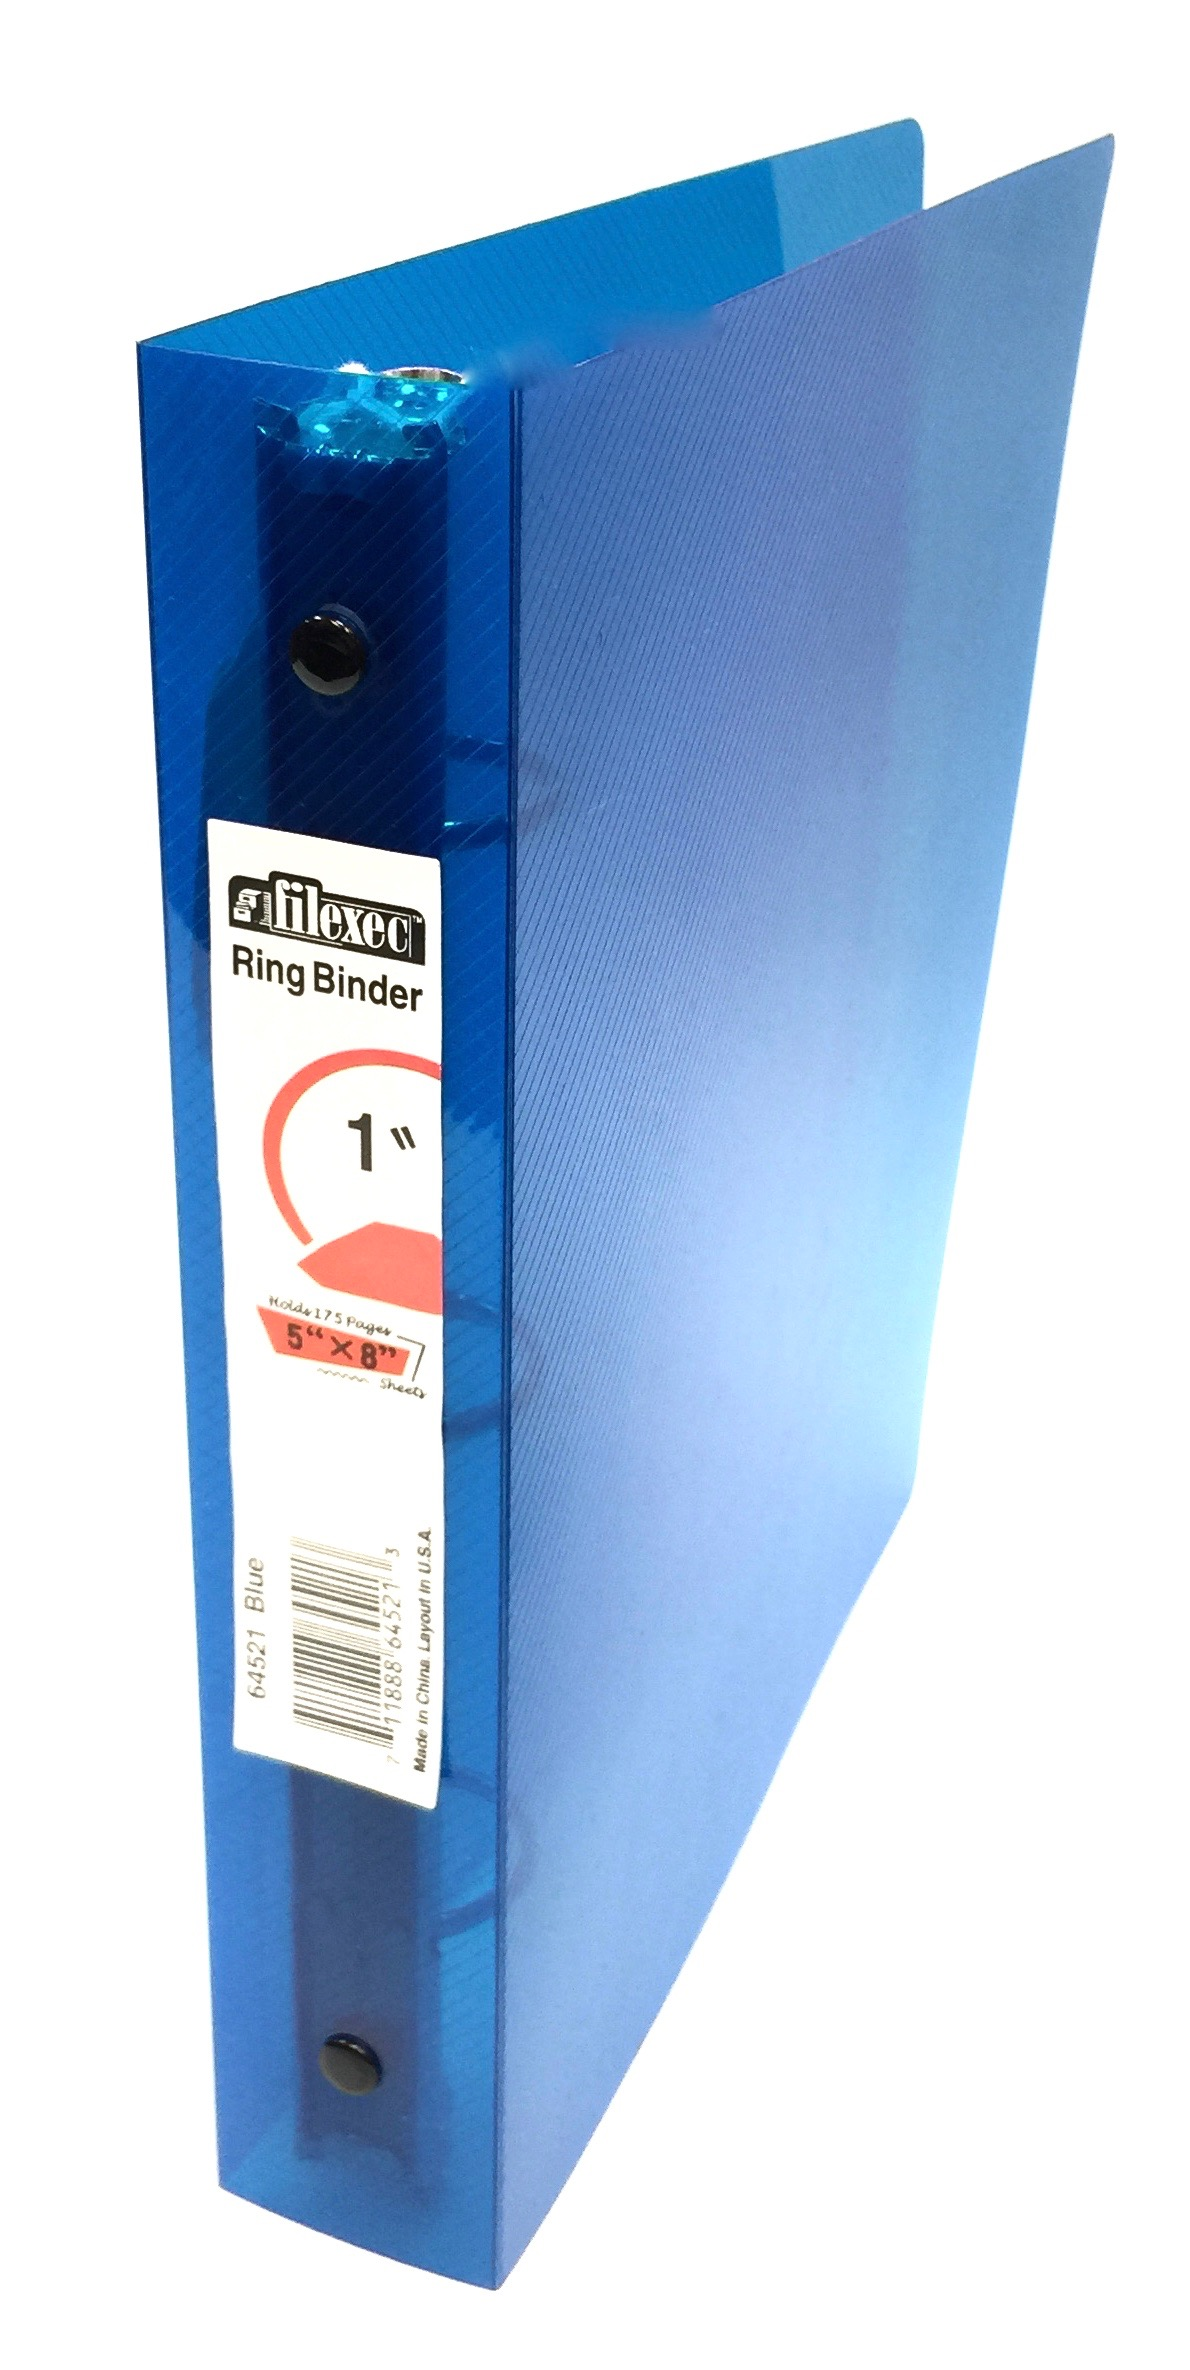 3 Ring Binder 5x8 - Blue